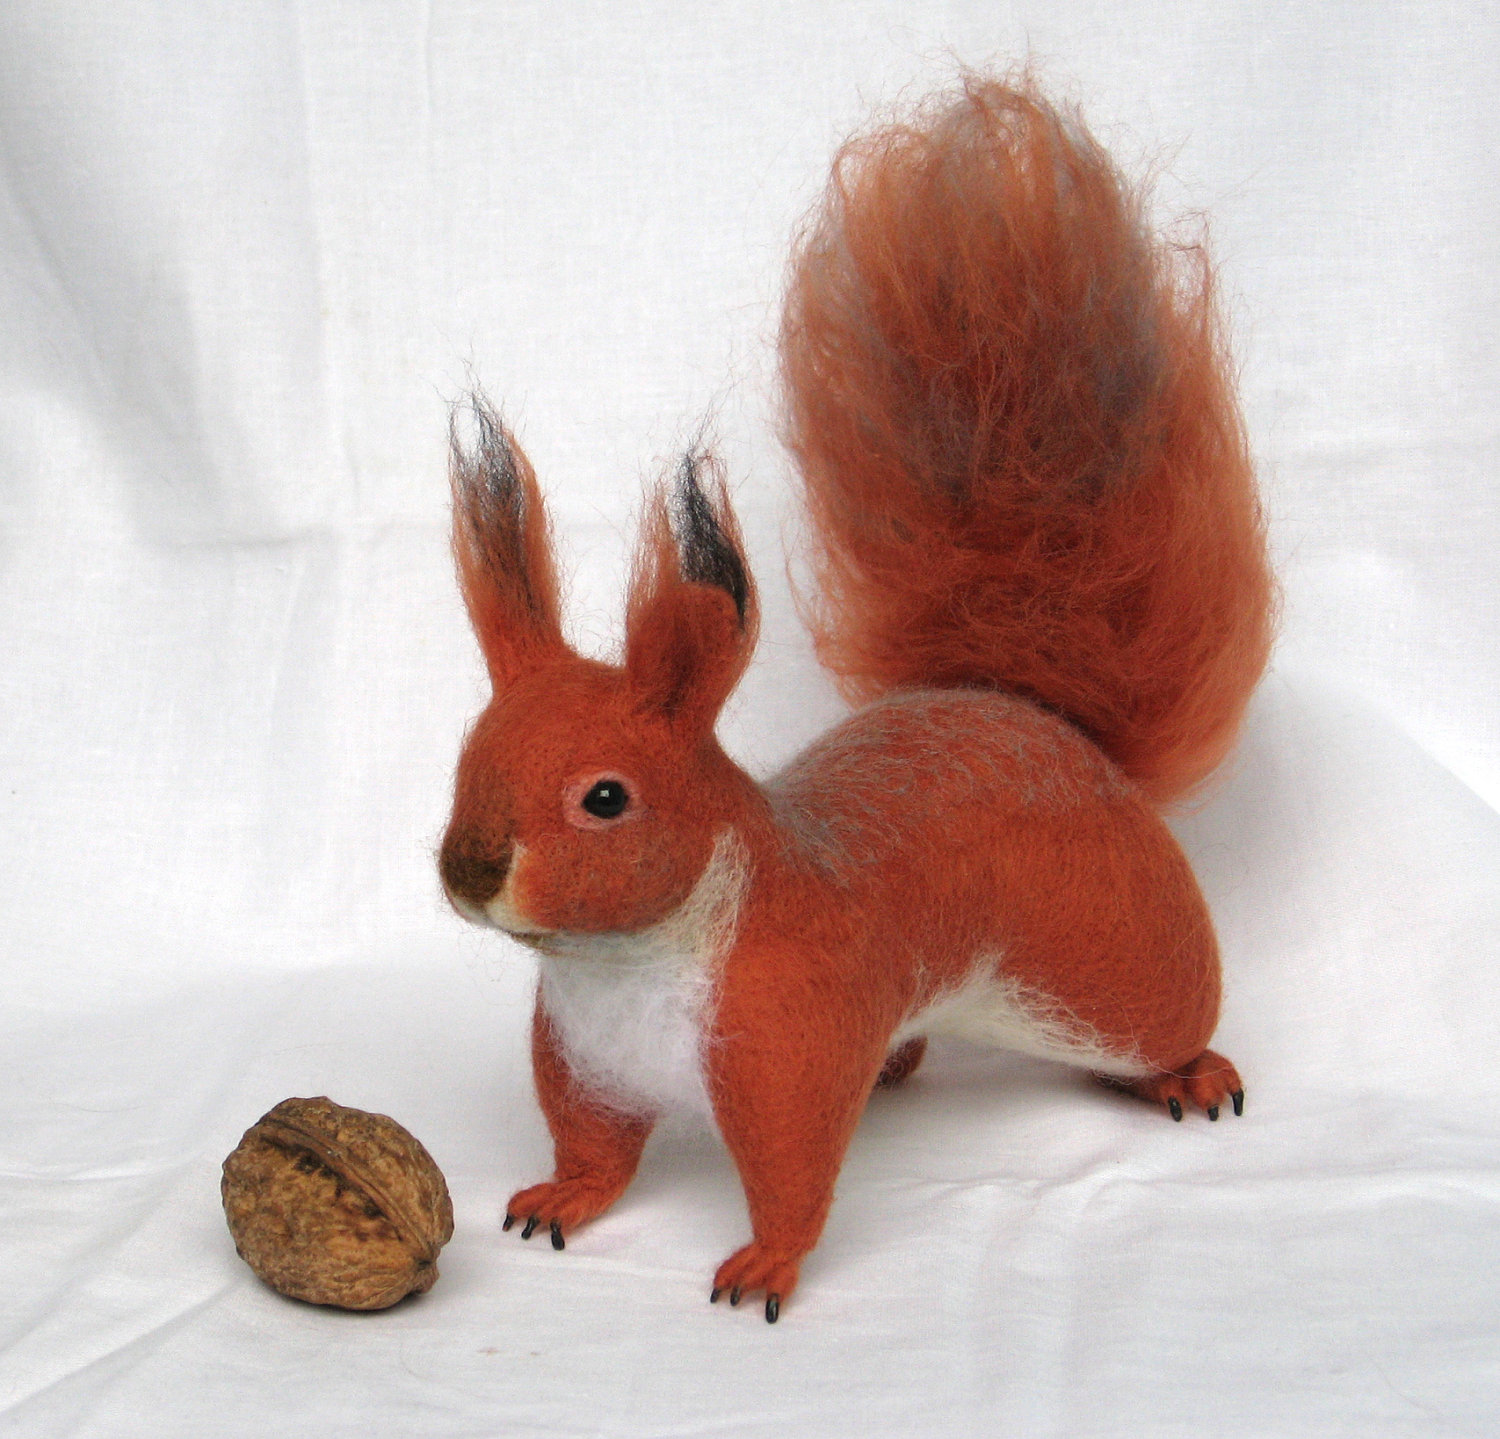 Felt toy Squirrel... I will make this item for